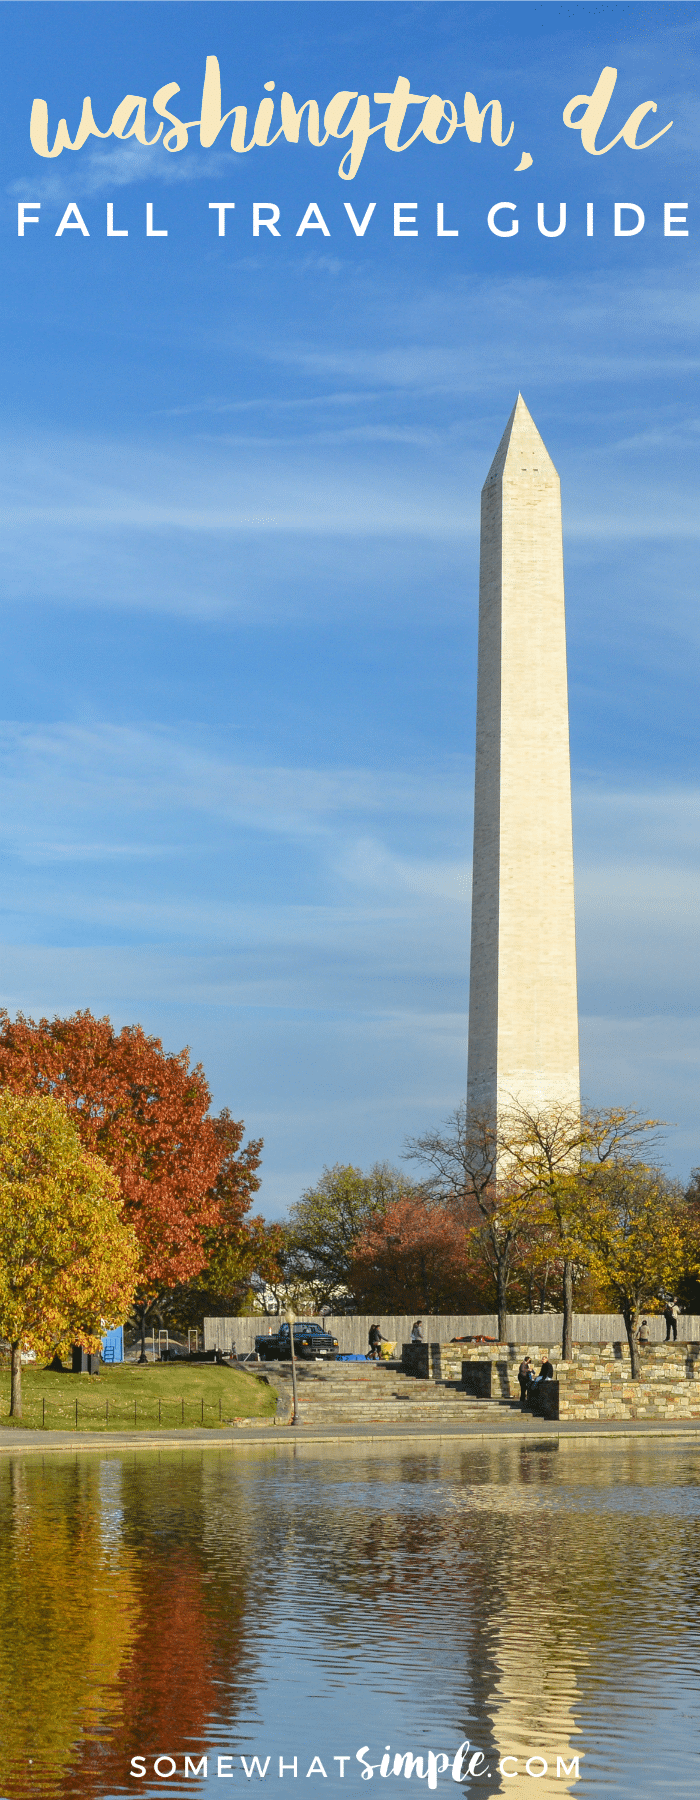 Before you head to the nation's capitol, we have some tips and suggestions we'd like to share. Here is our Washington DC Travel Guide.